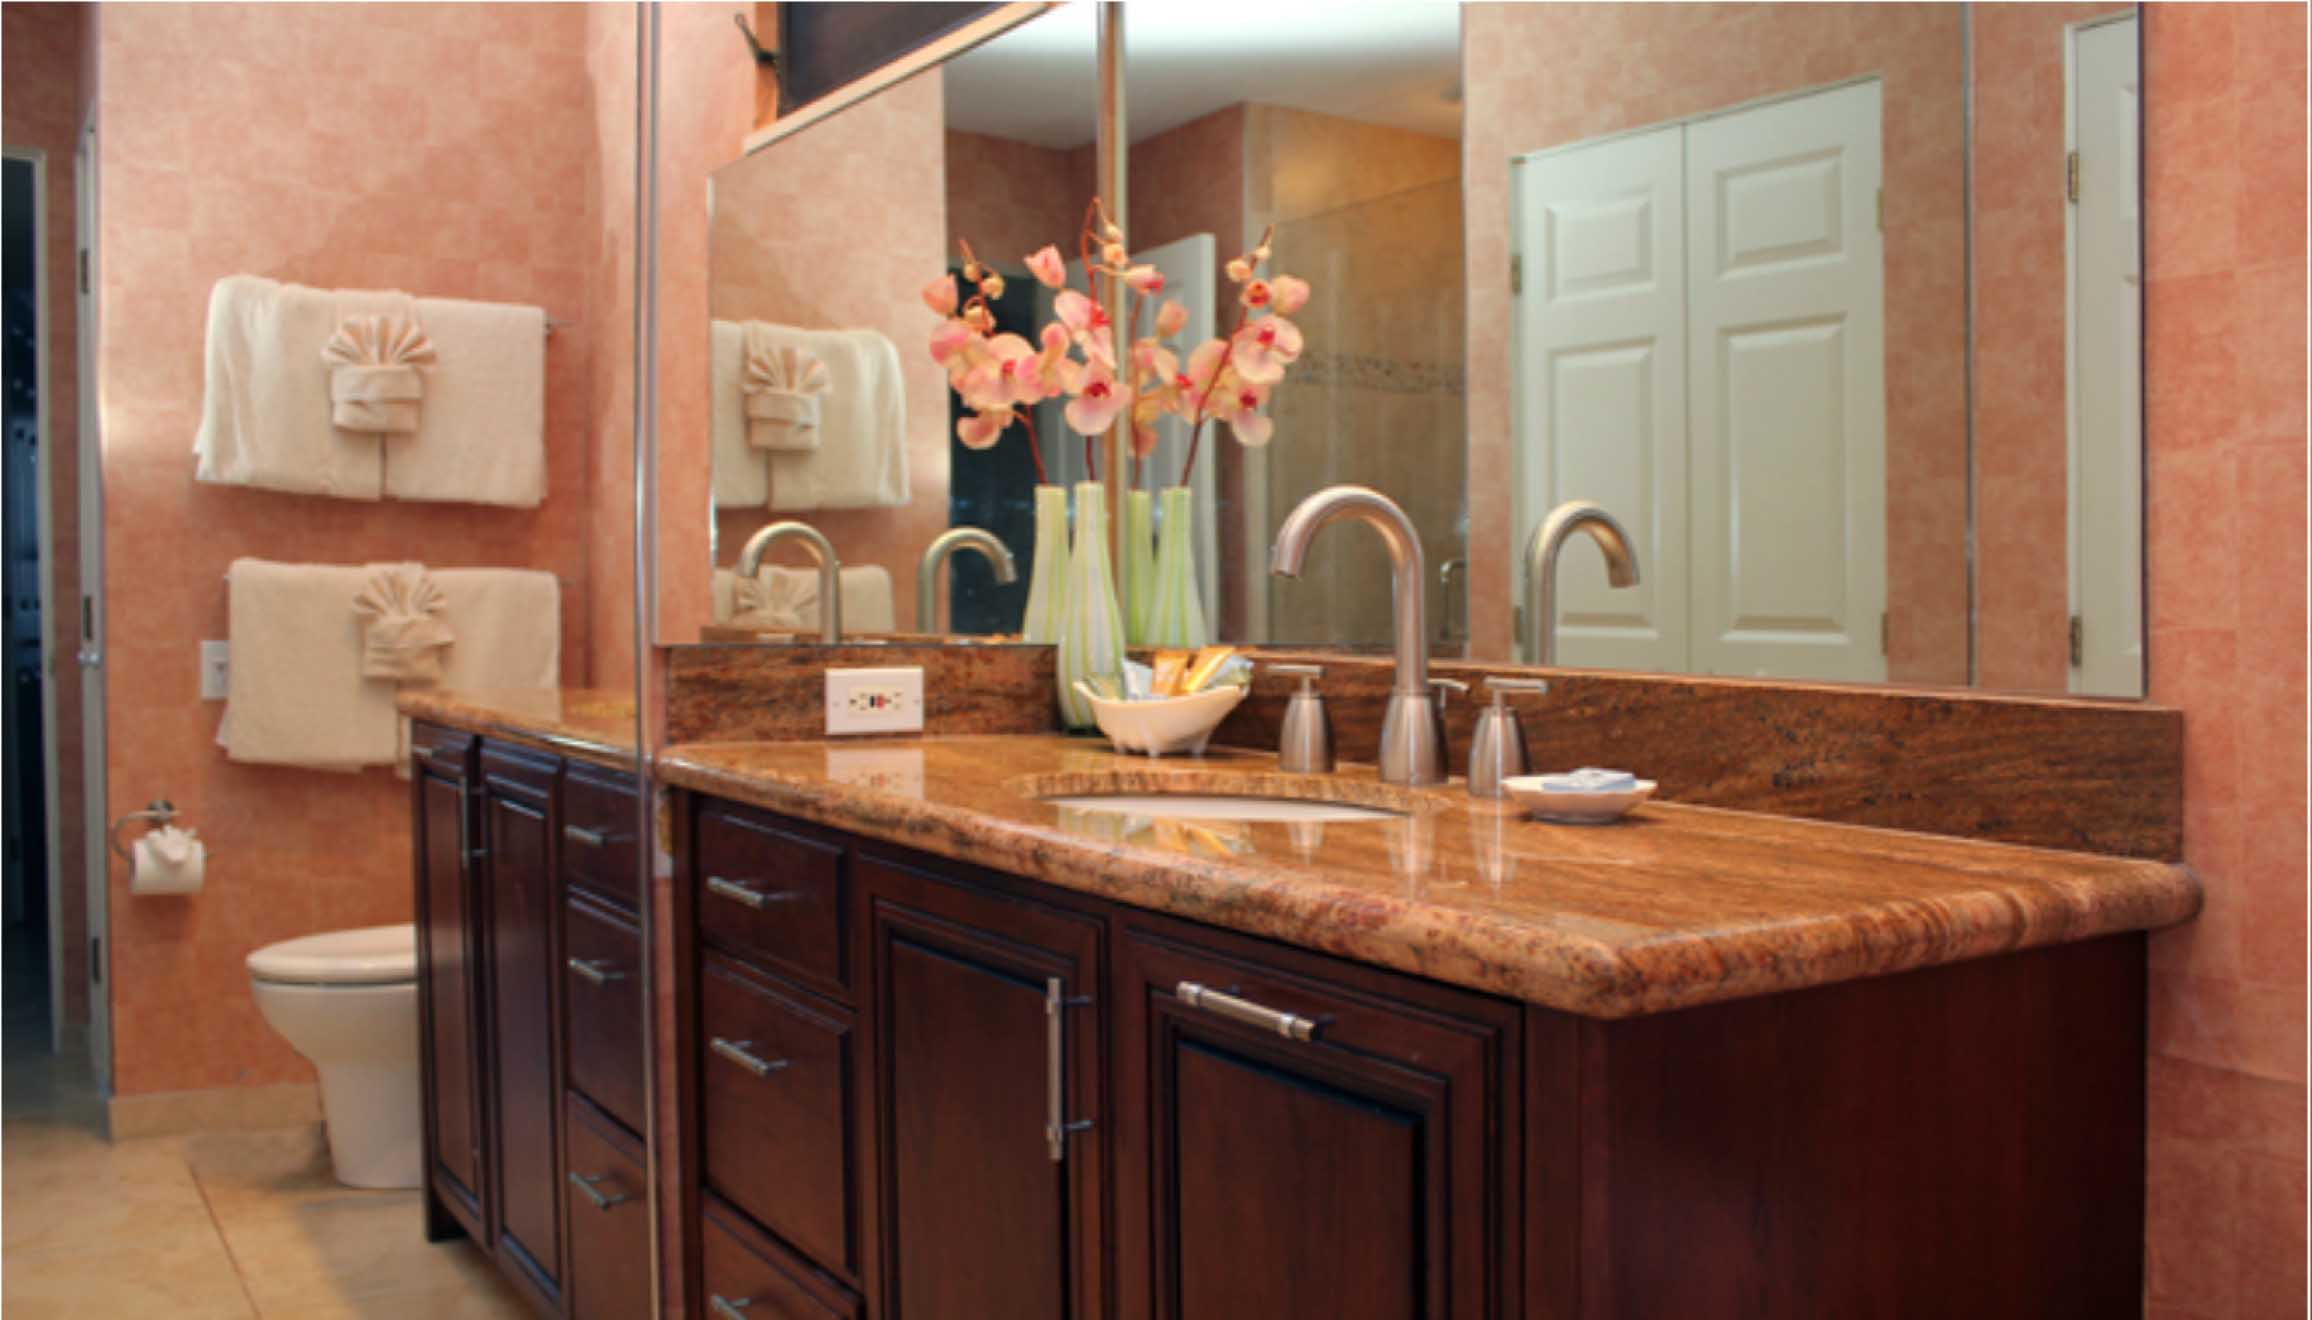 Guest bathroom, granite counter top